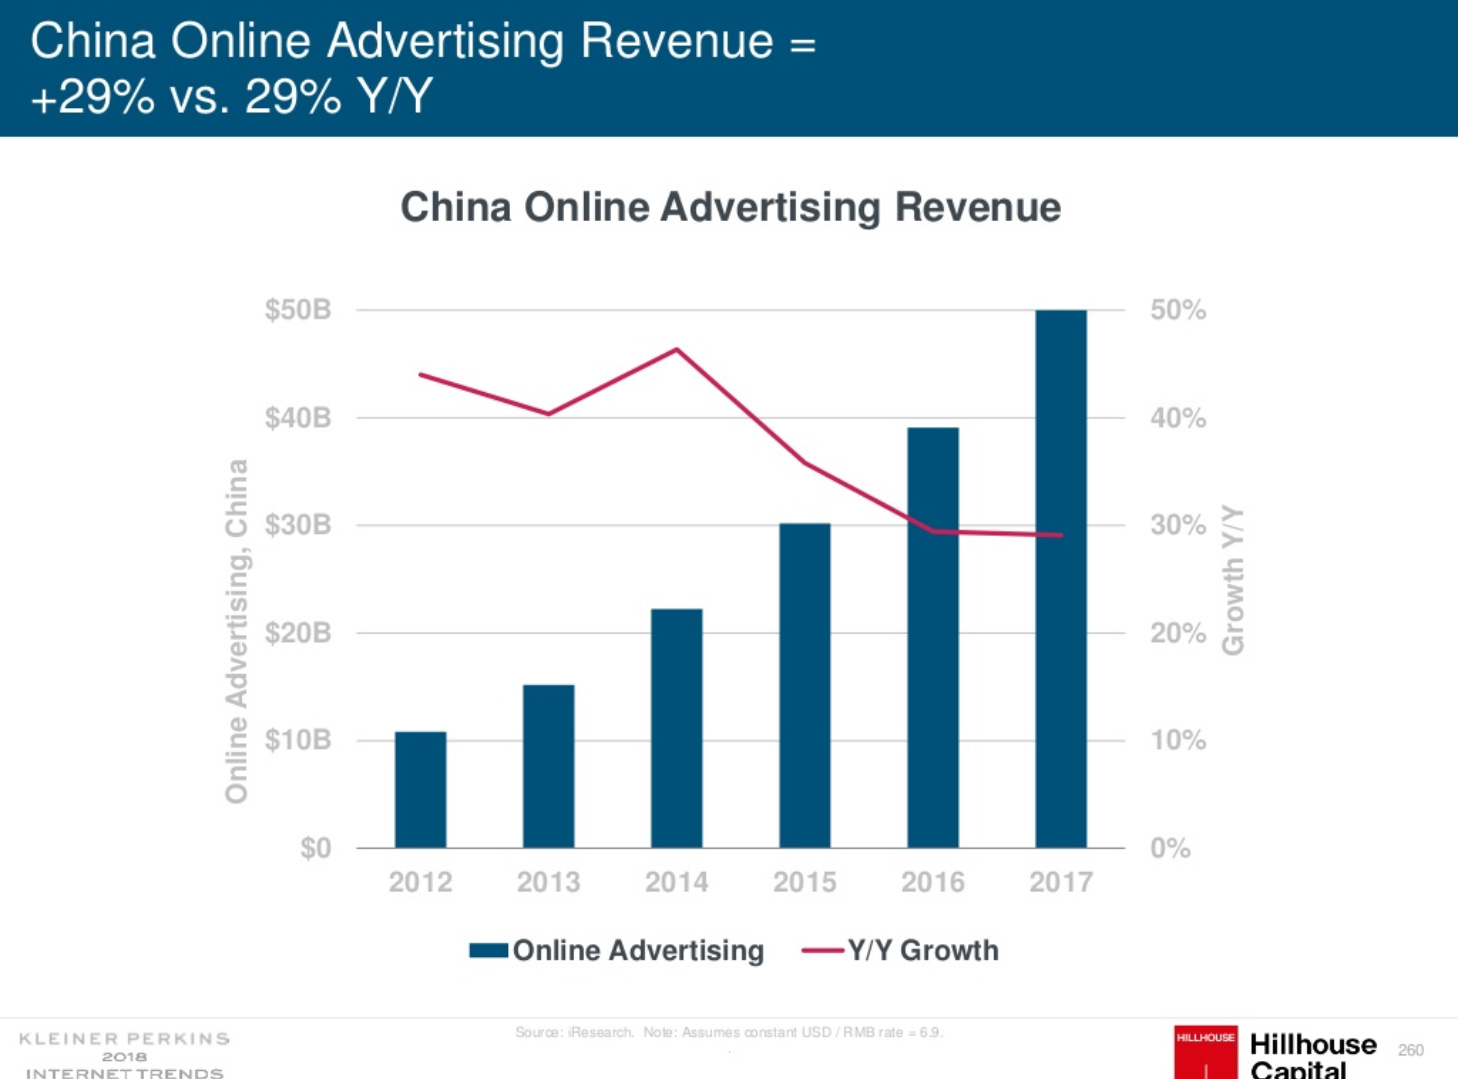 Increased Chinese Online Advertising Revenue